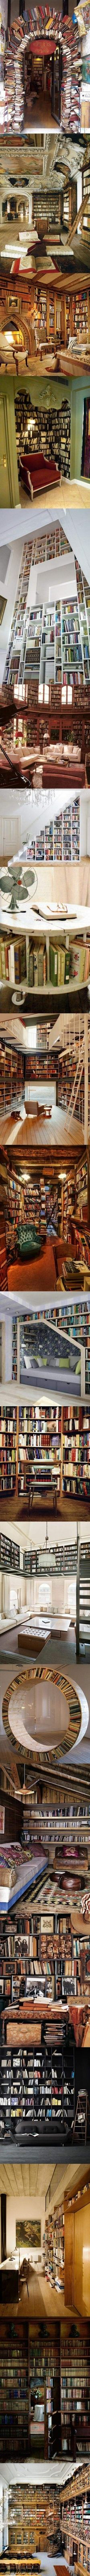 Pin by erica johnston on library haus love pinterest book